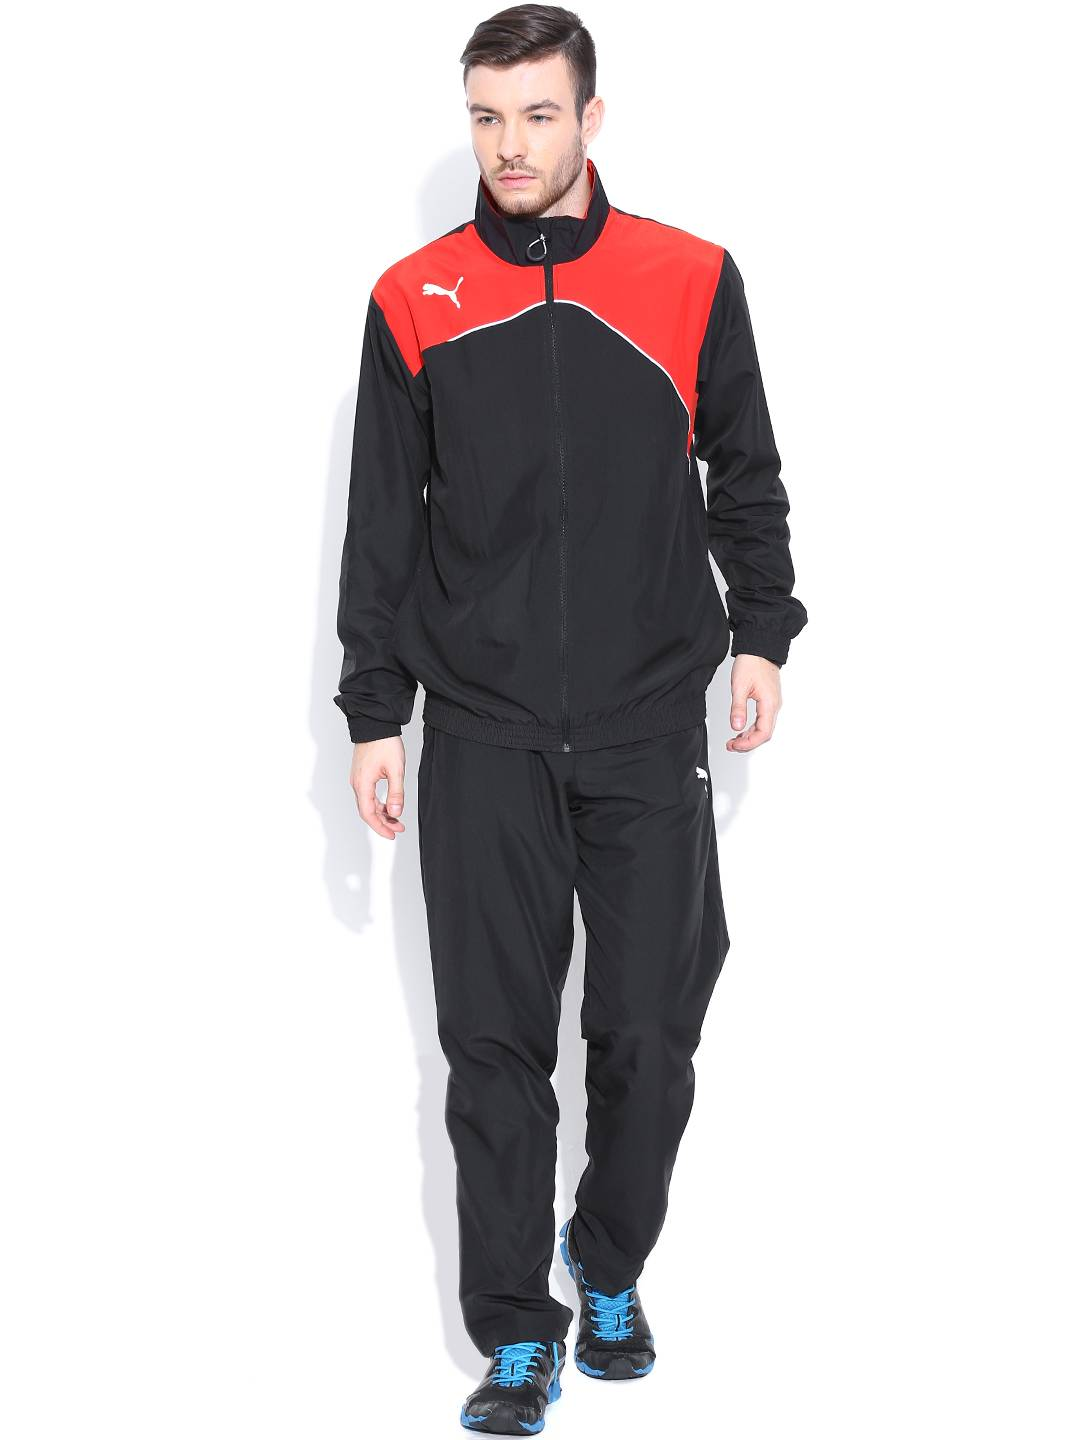 Get upto 70% OFF on Puma Shoes , Jackets, Tracksuits , Shirts and Many More Products.